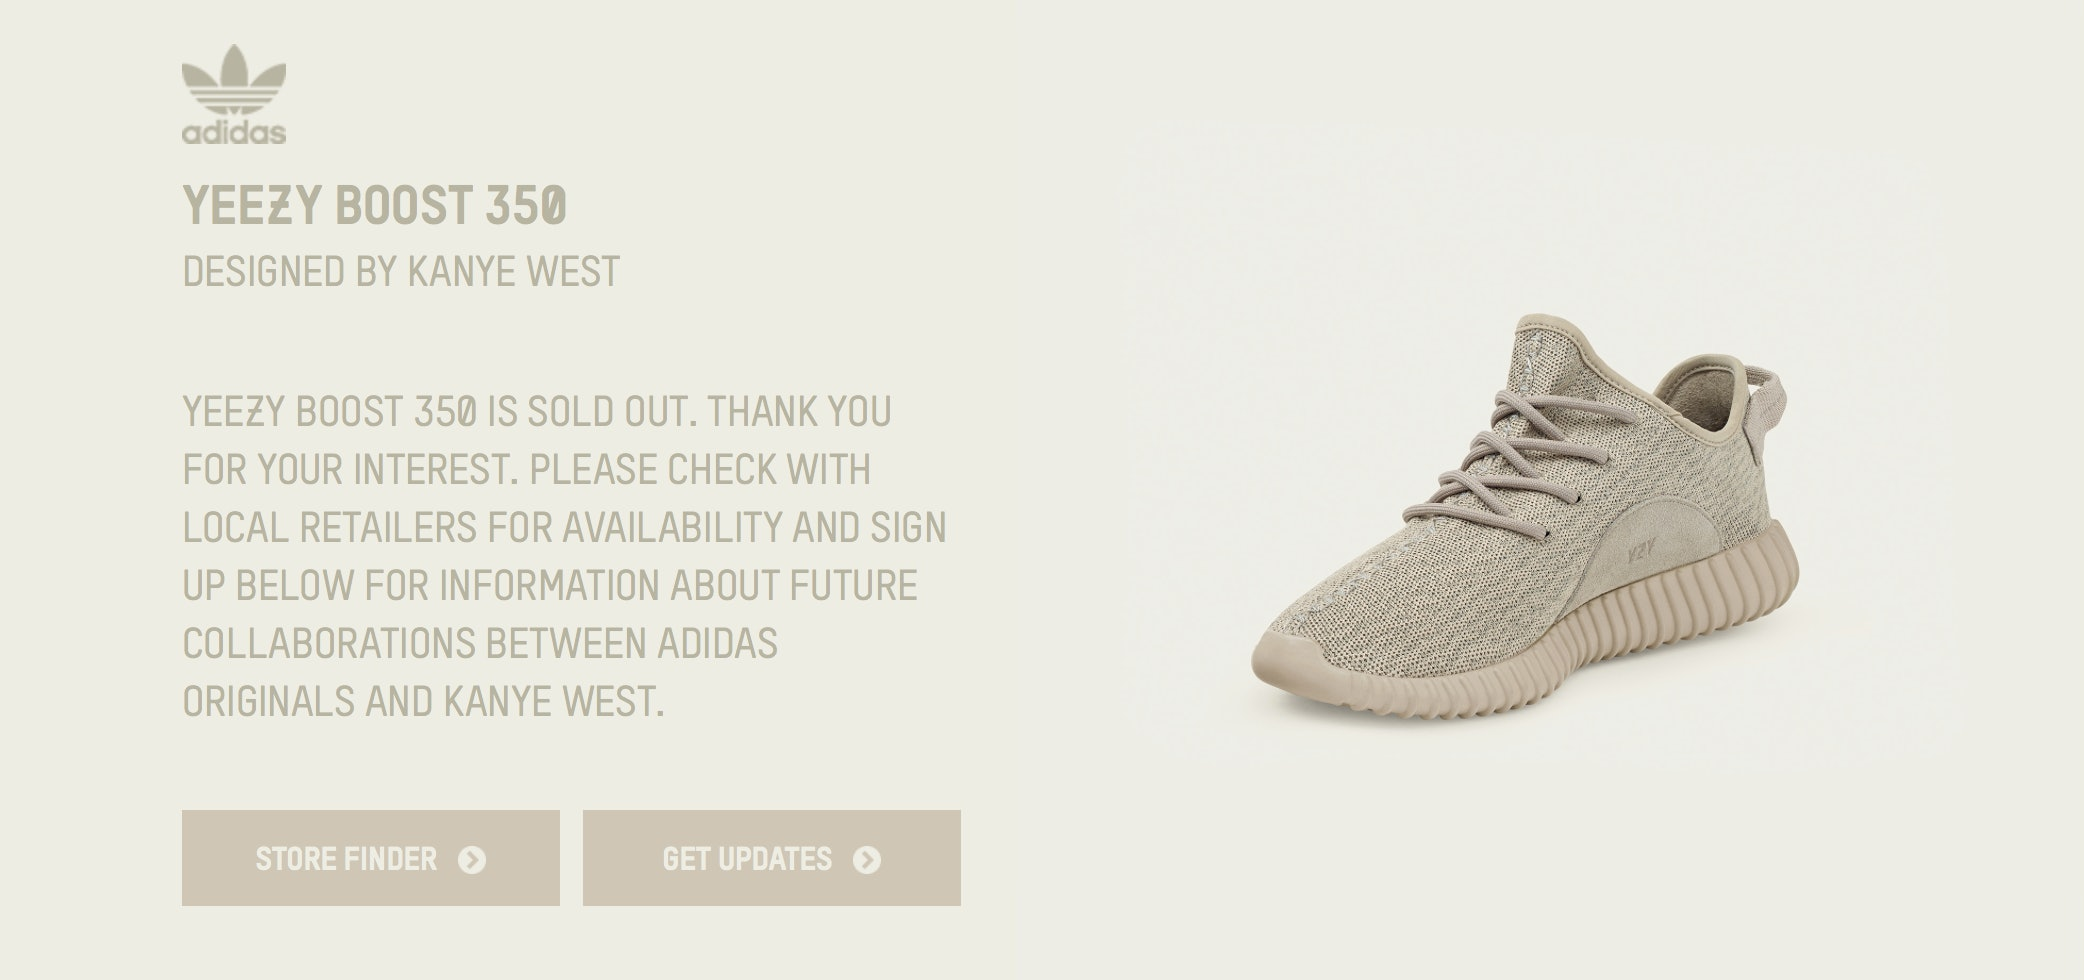 a2e566adaad Will The Yeezy Boost 350s Be Restocked  There s A Reason To Have Hope